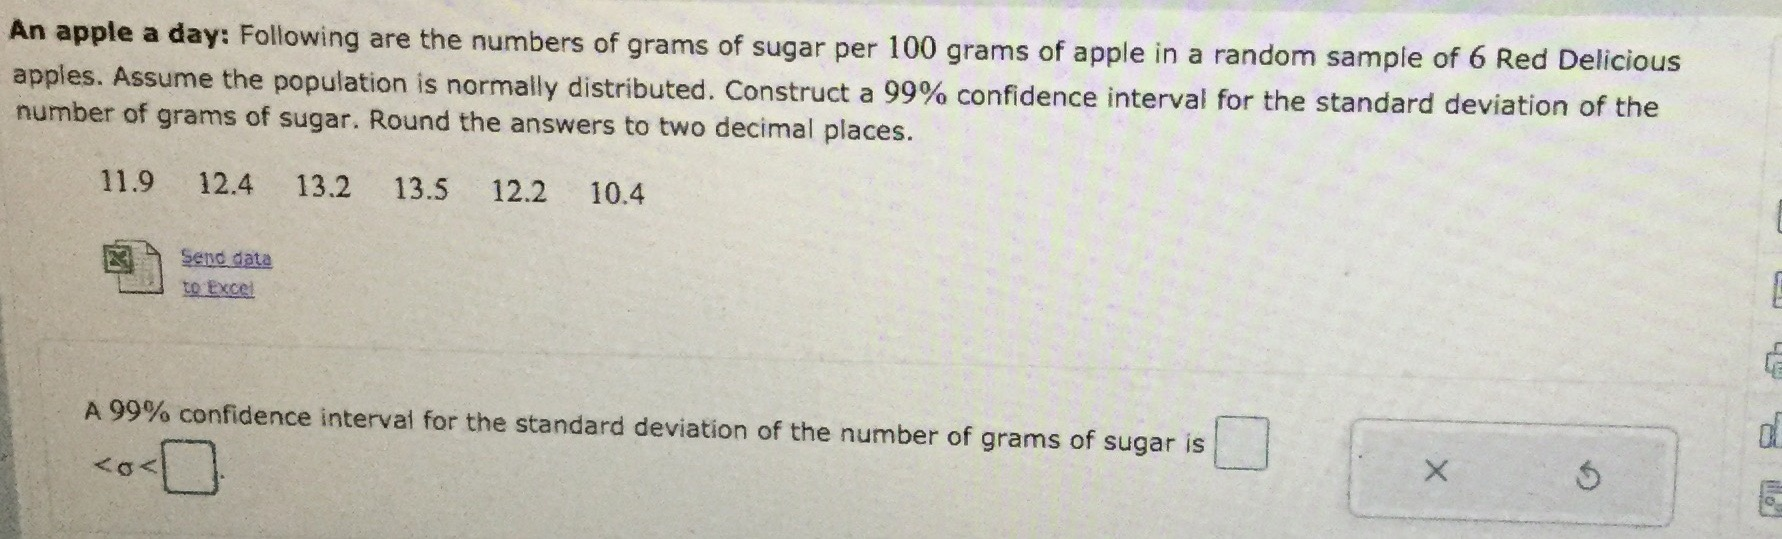 An apple a day: Following are the numbers of grams of sugar per 100 grams of apple in a random sample of 6 Red Delicious apples. Assume the population is normally distributed. Construct a 99% confidence interval for the standard deviation of the number of grams of sugar. Round the answers to two decimal places. 11.9 12.4 13.2 13.5 12.2 10.4 Send data to Excel A 99% confidence intervai for the standard deviation of the number of grams of sugar is <0<